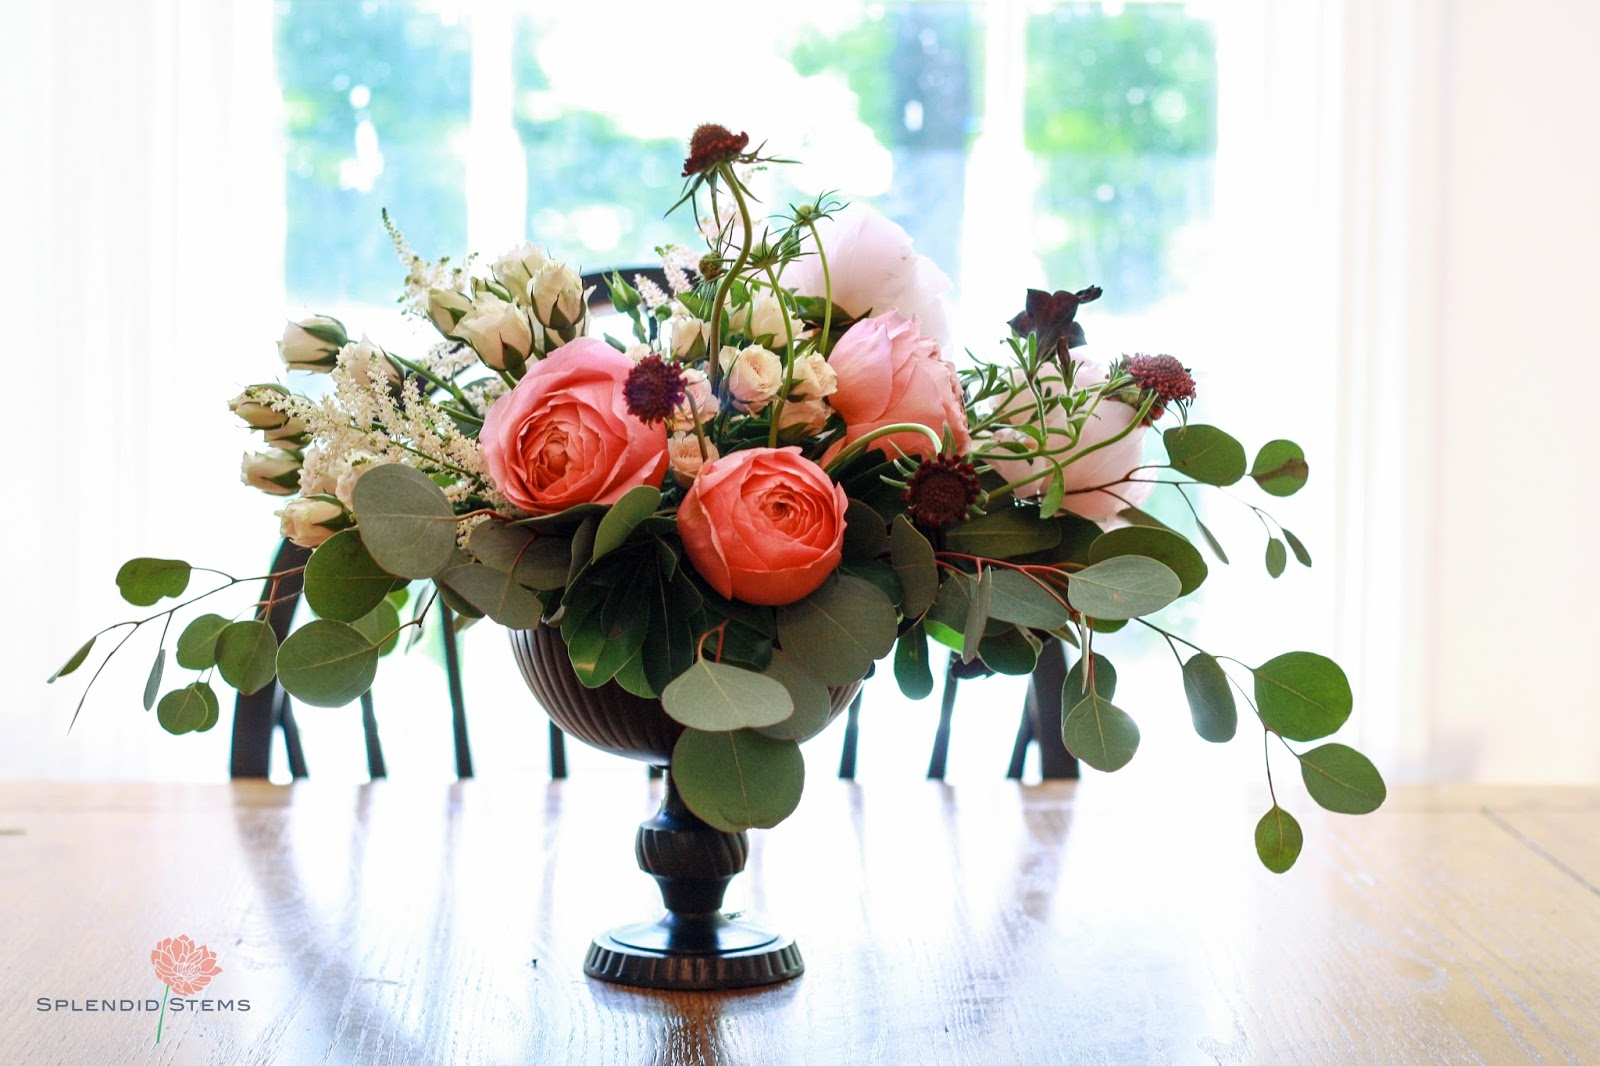 Splendid stems floral designs wedding flowers wedding florist saratoga springs new york canfield casino wedding flowers splendid stems floral design mightylinksfo